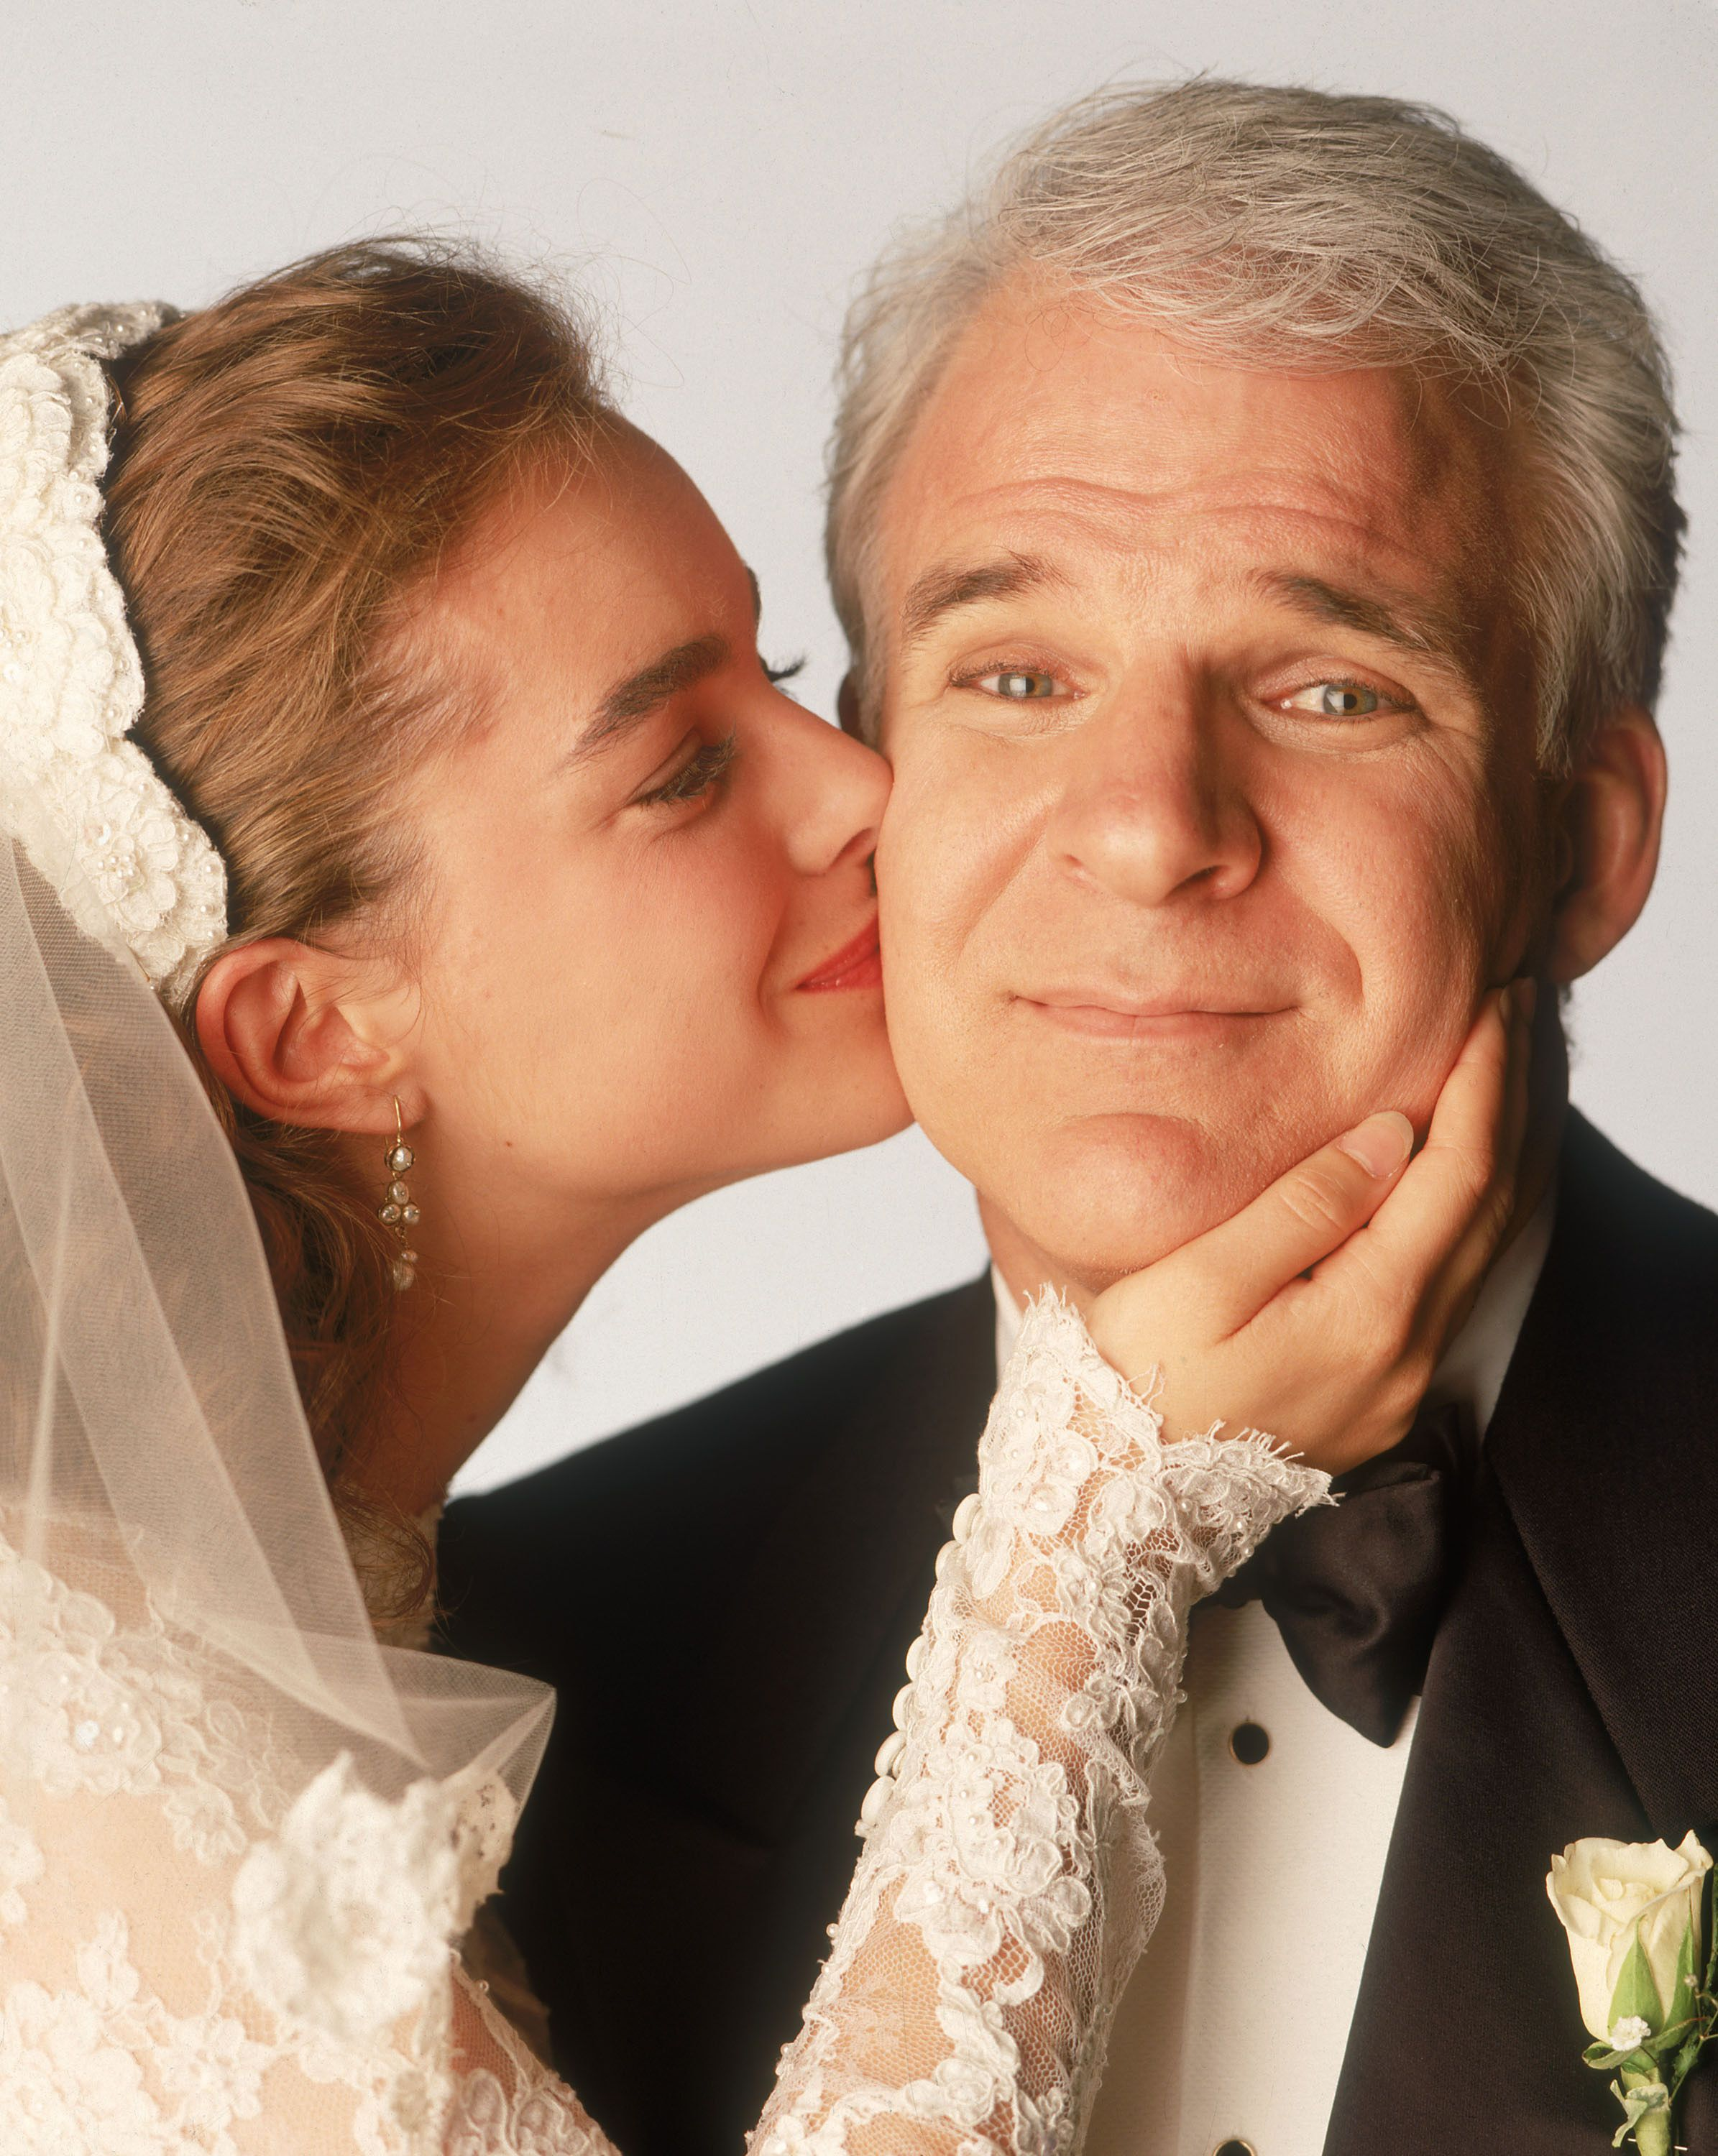 Father Of The Bride 3 In Development With Steve Martin To Return